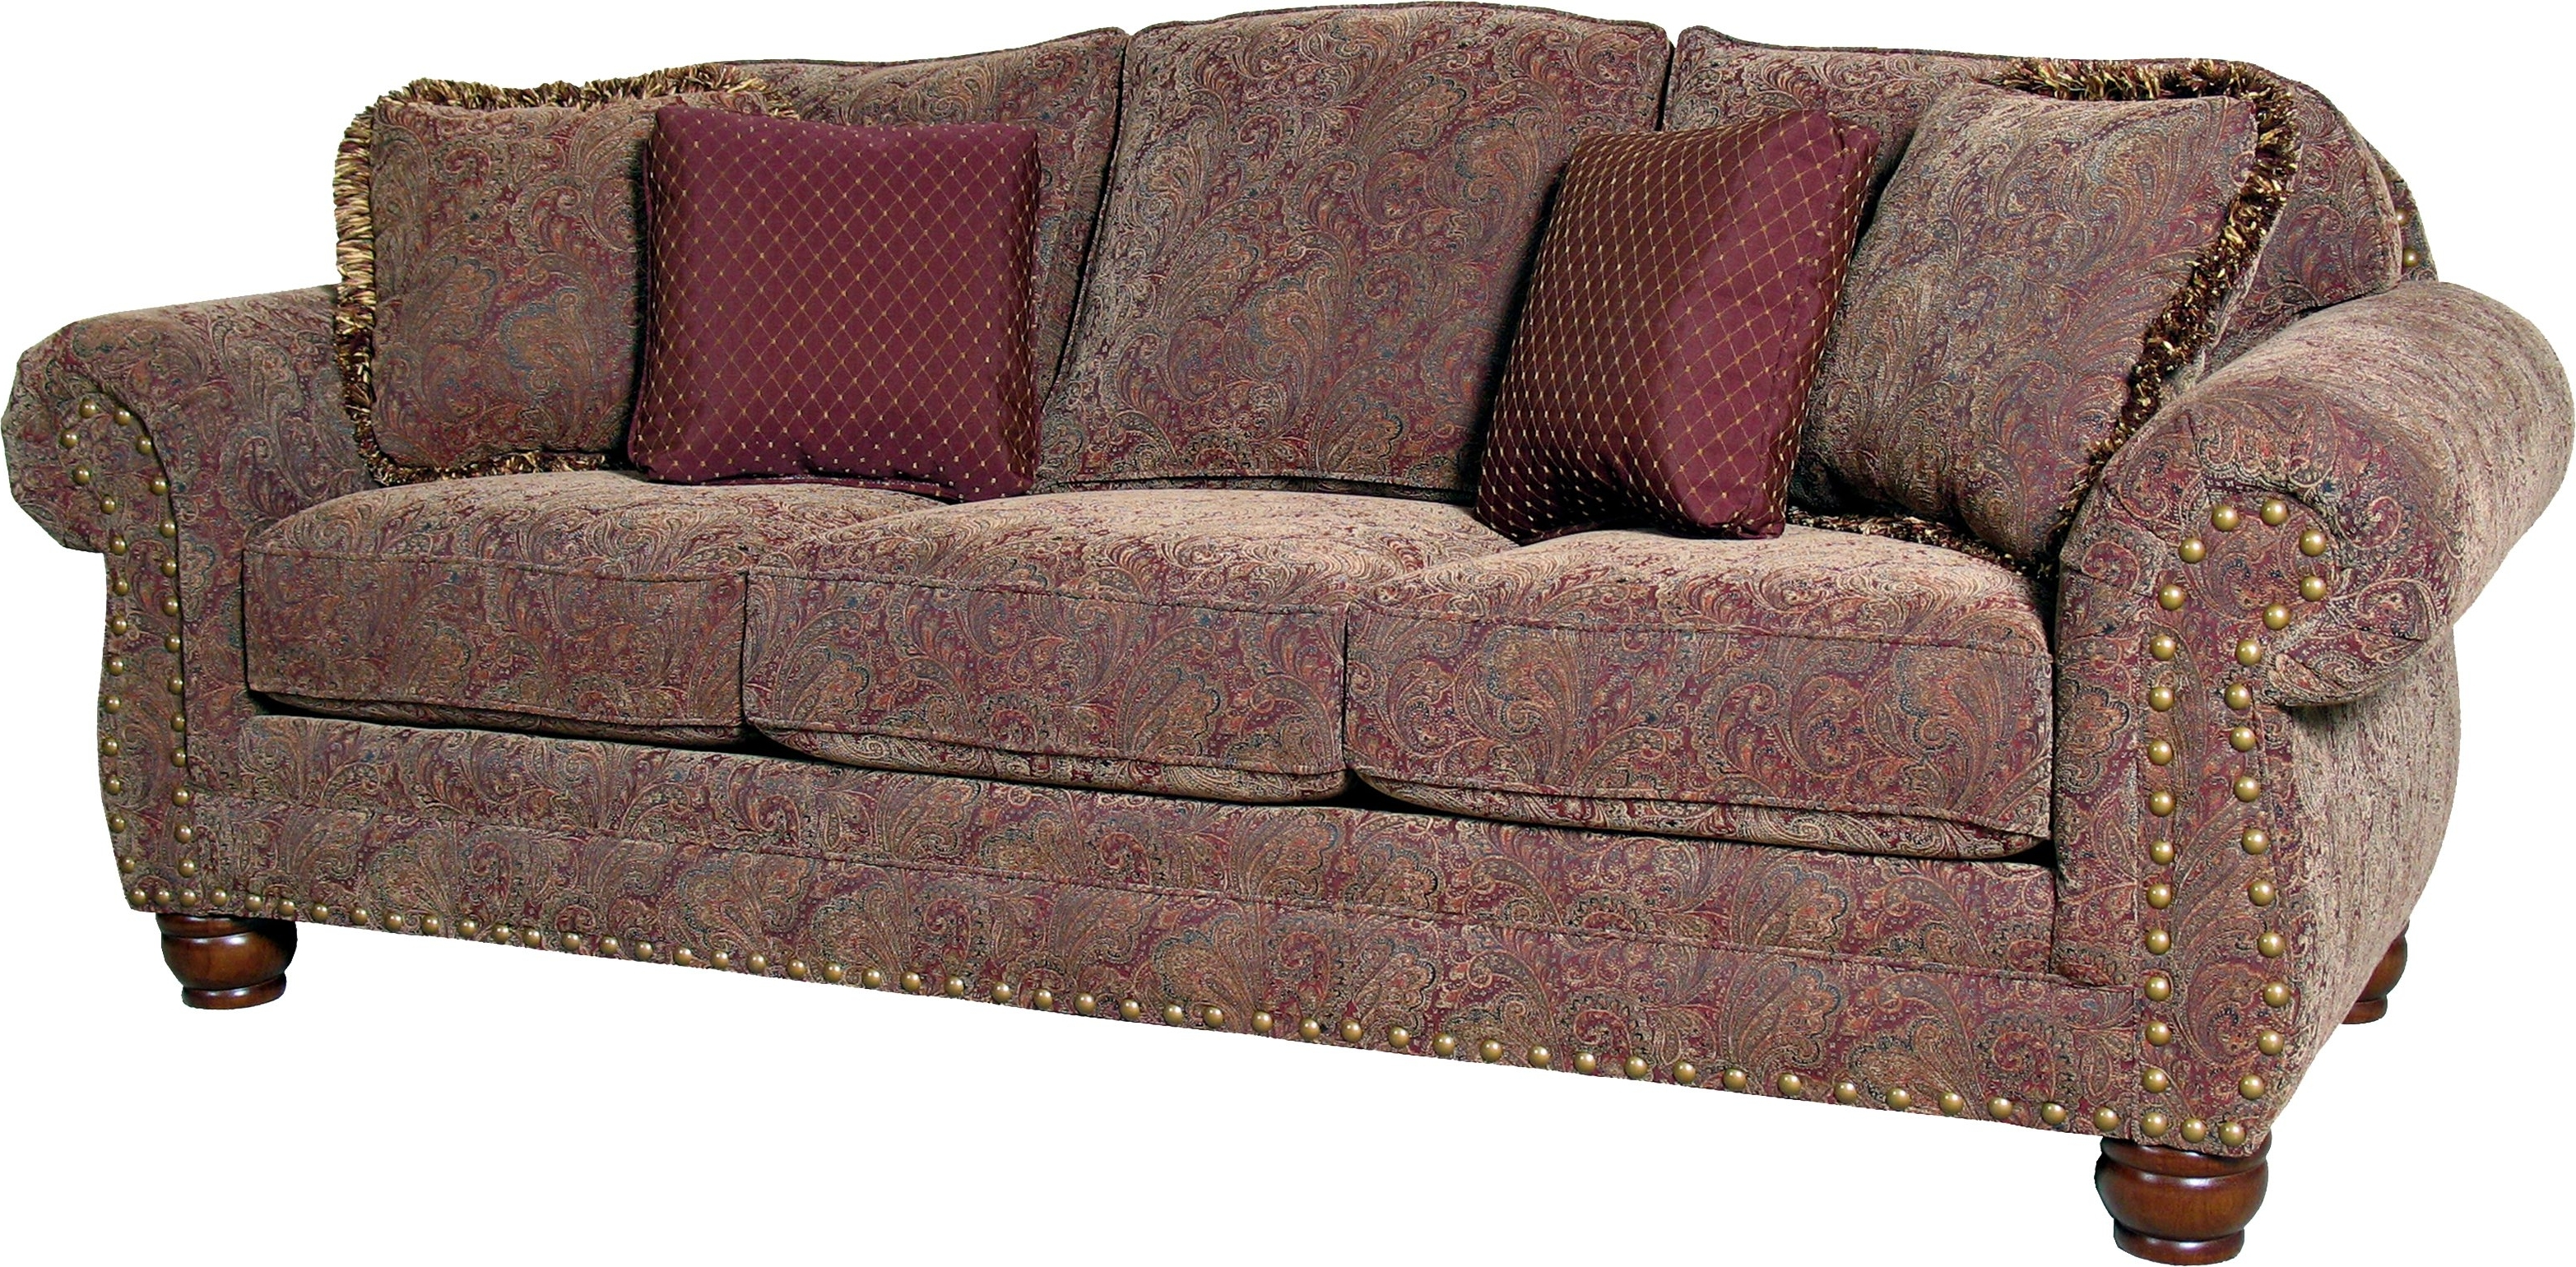 Widely Used Pandora/antique Sofa (View 15 of 15)